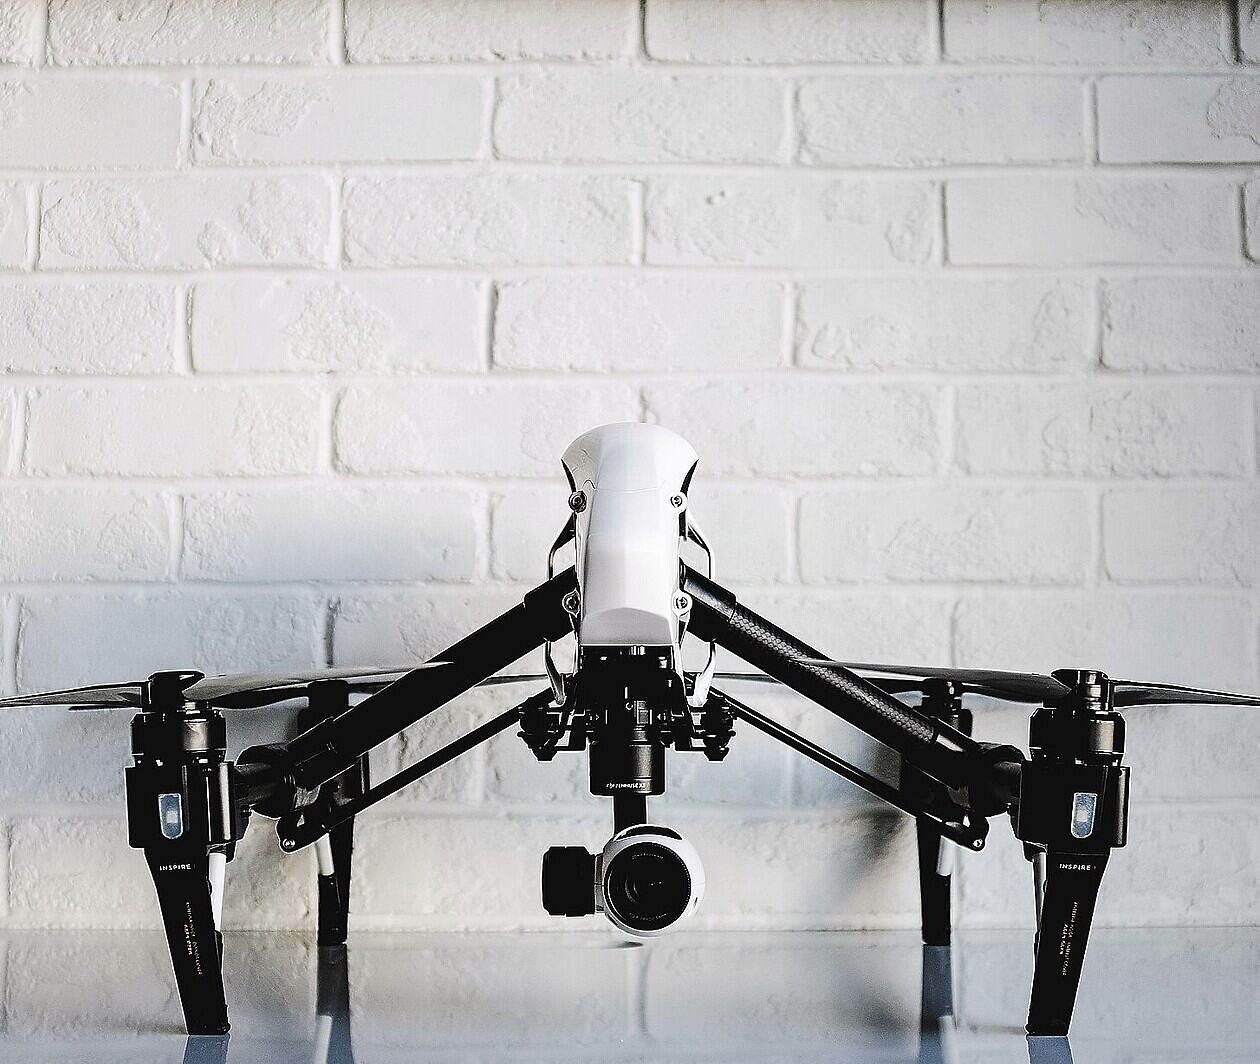 Drone Safety for Managers (India)